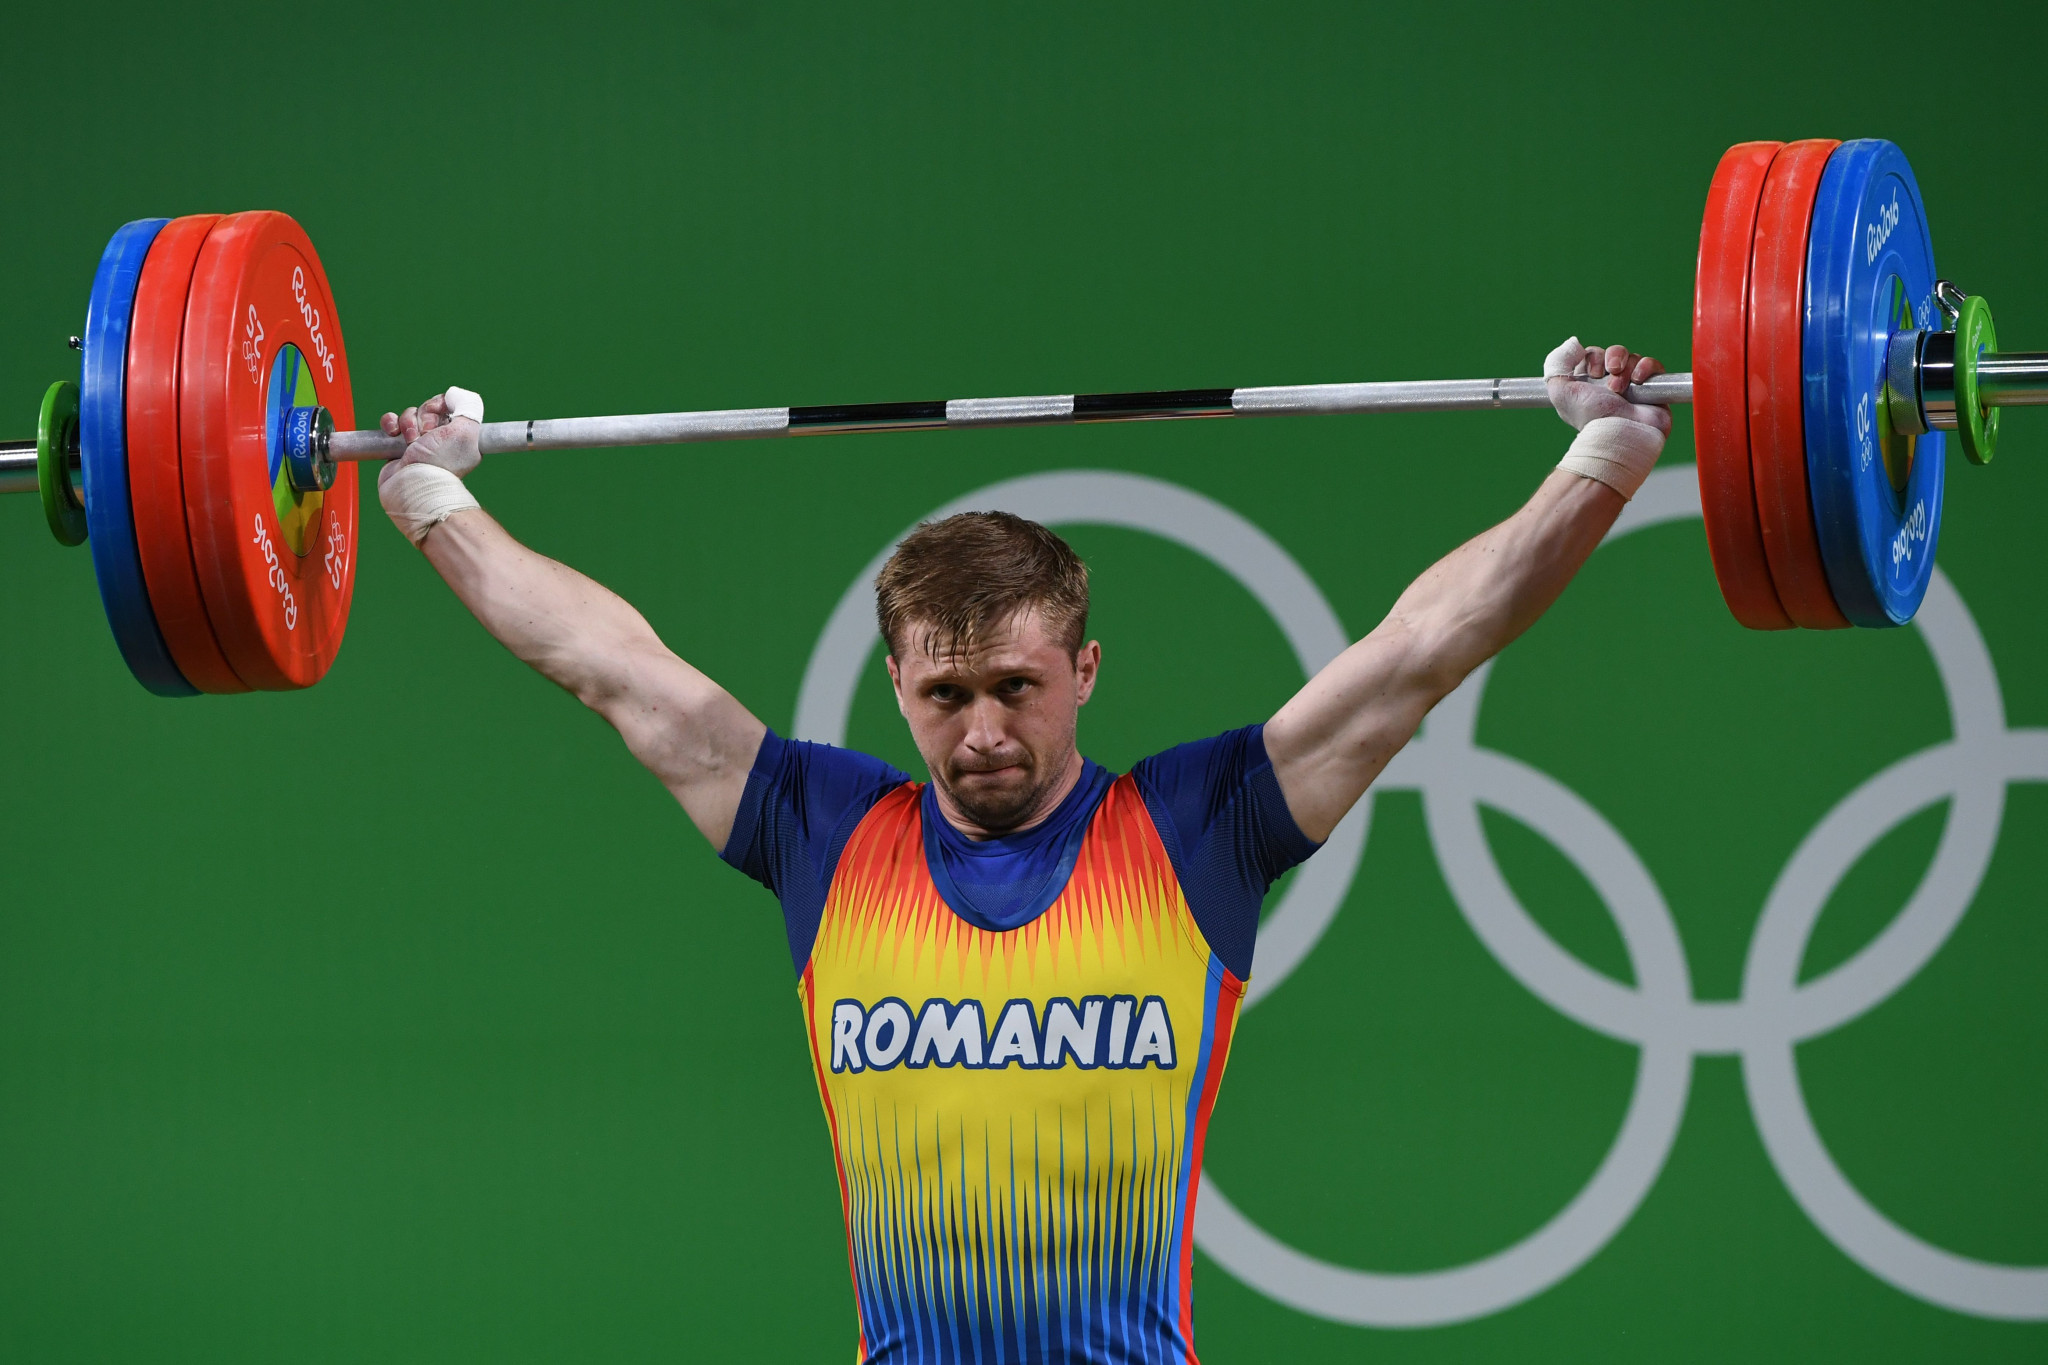 It states in the report that Romanian weightlifter Gabriel Sîncrăian, who has already been disqualified from the Rio 2016 Olympic Games due to doping, will be interviewed as part of the investigation ©Getty Images